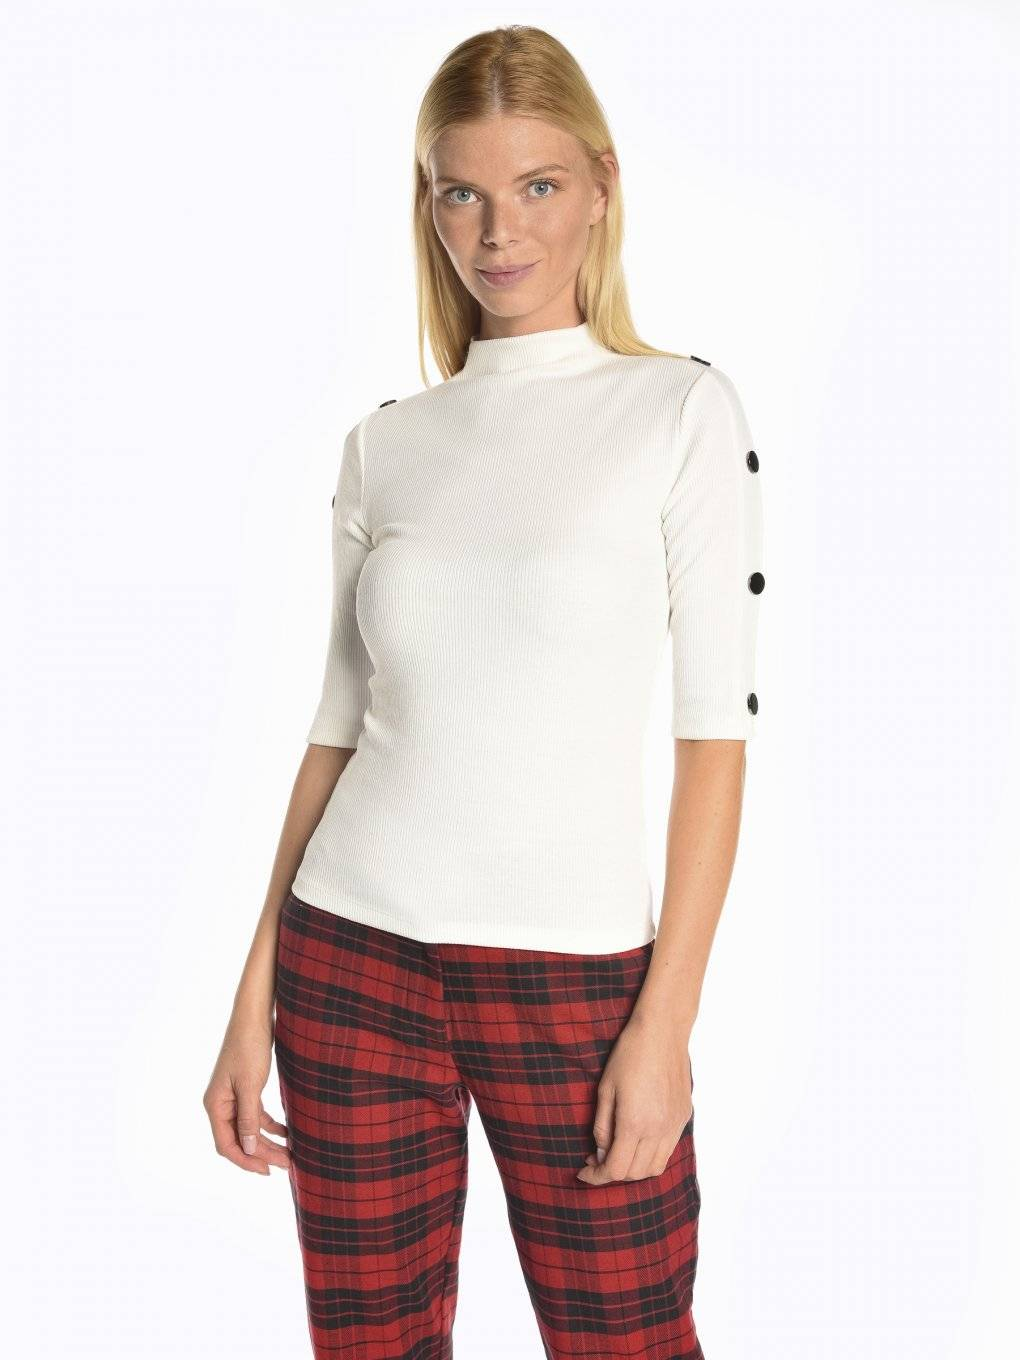 Ribbed top with sleeve buttons